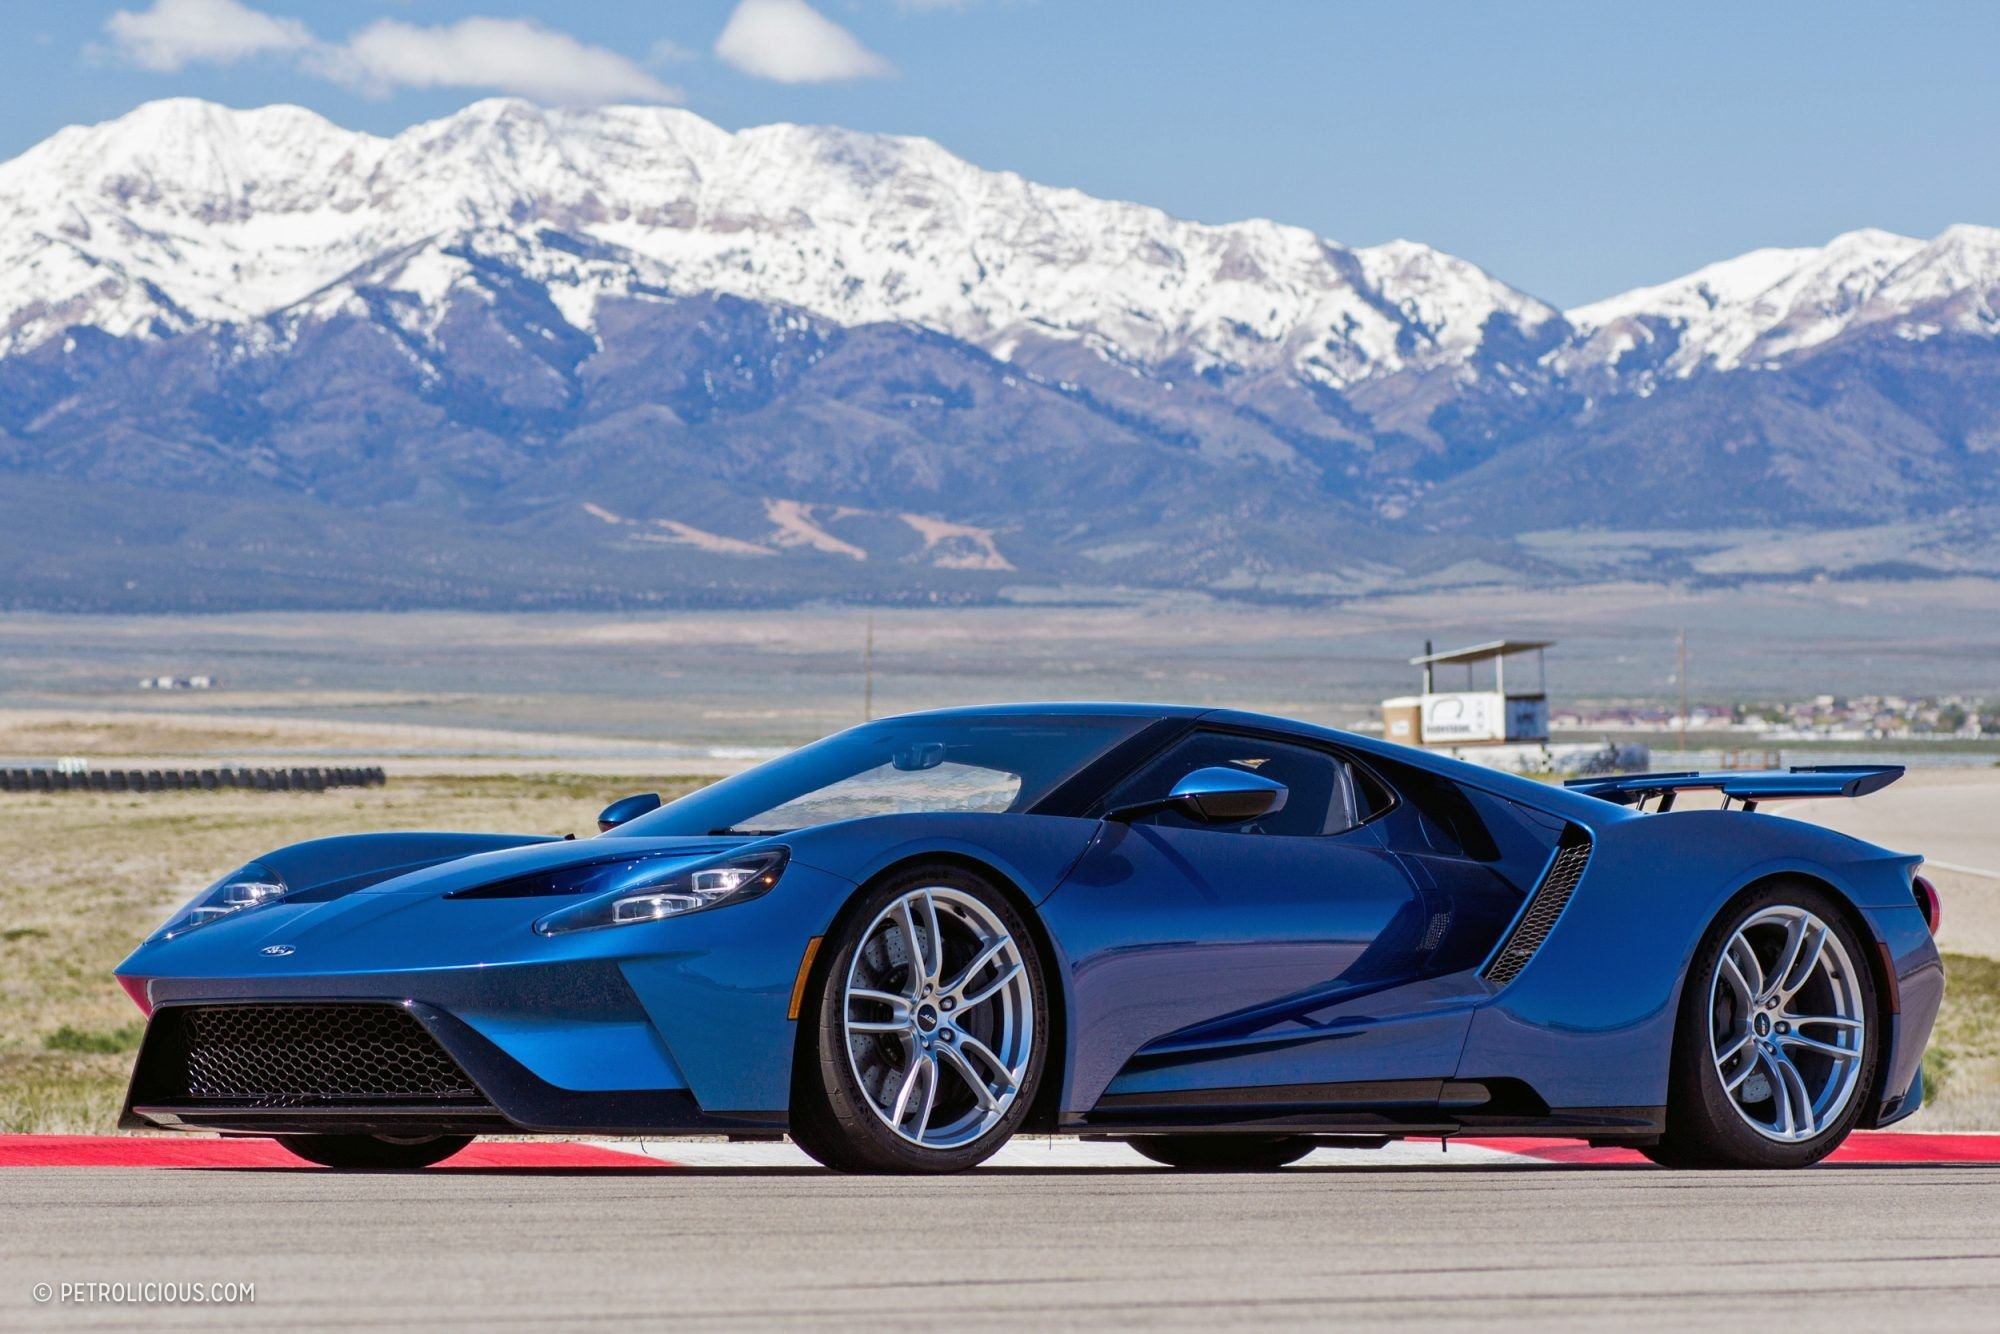 2017 Ford Gt Liquid Blue Repin By At Social Media Marketing Pinterest Marketing Specialists Atsocialmedia Co Uk Ford Gt Classic Cars Cars